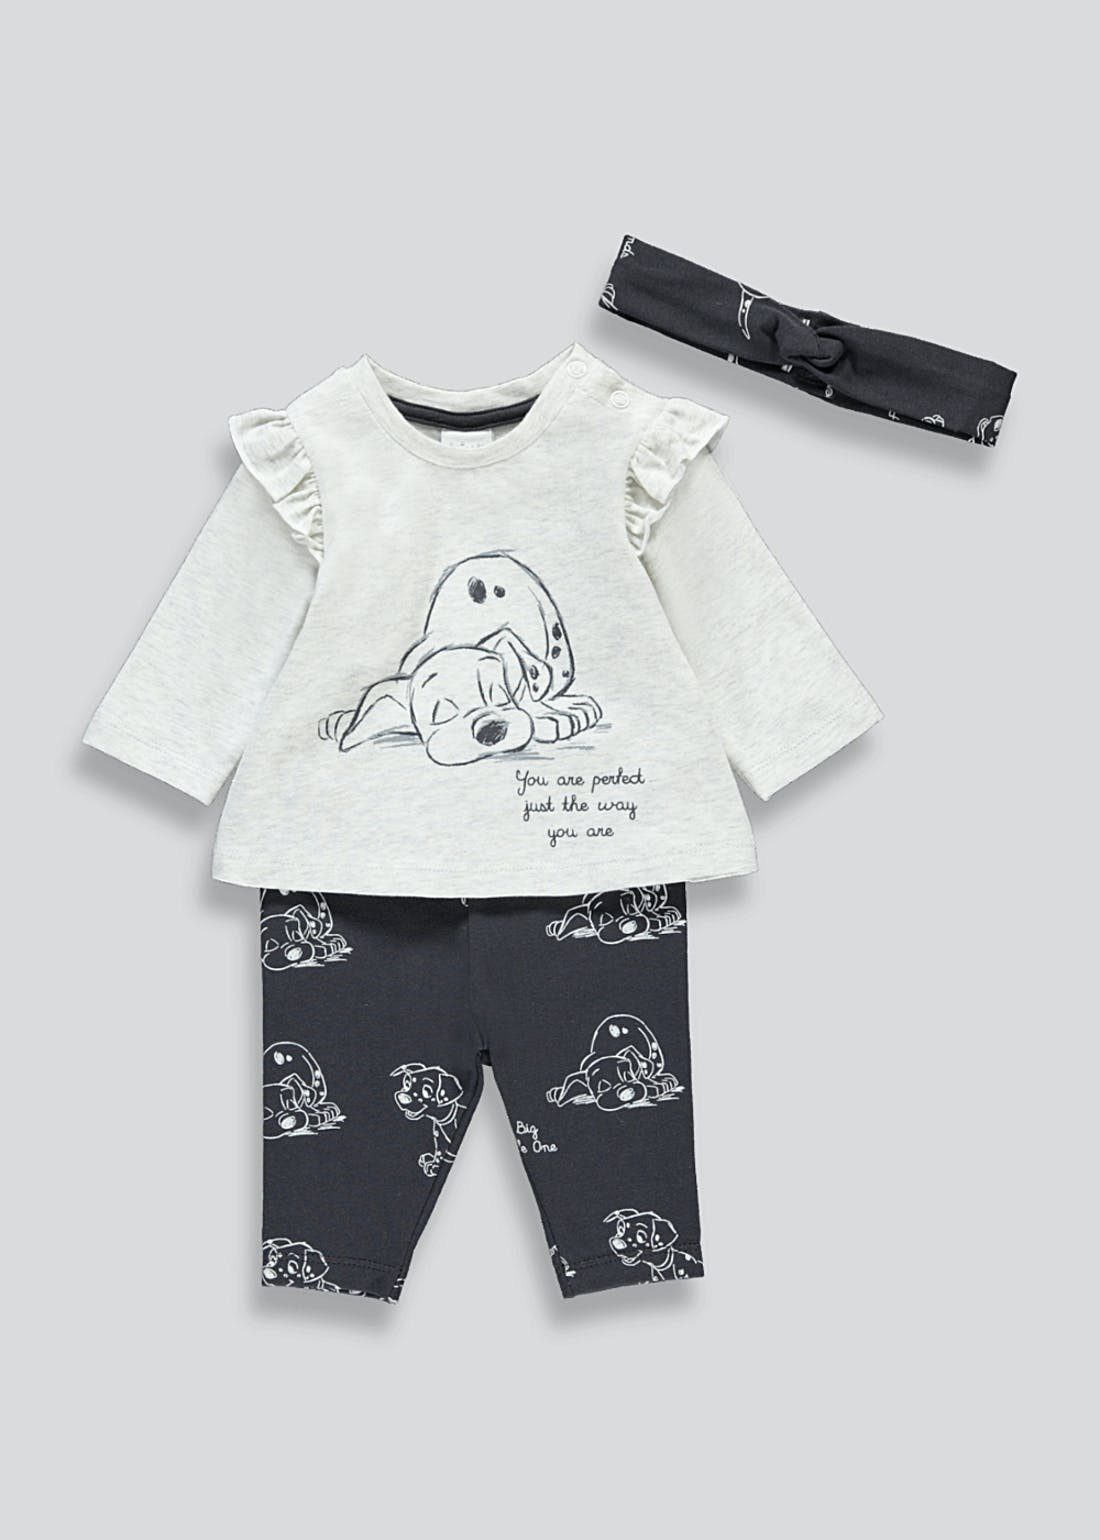 Girls 101 Dalmatians Outfit Set (Newborn-12mths)